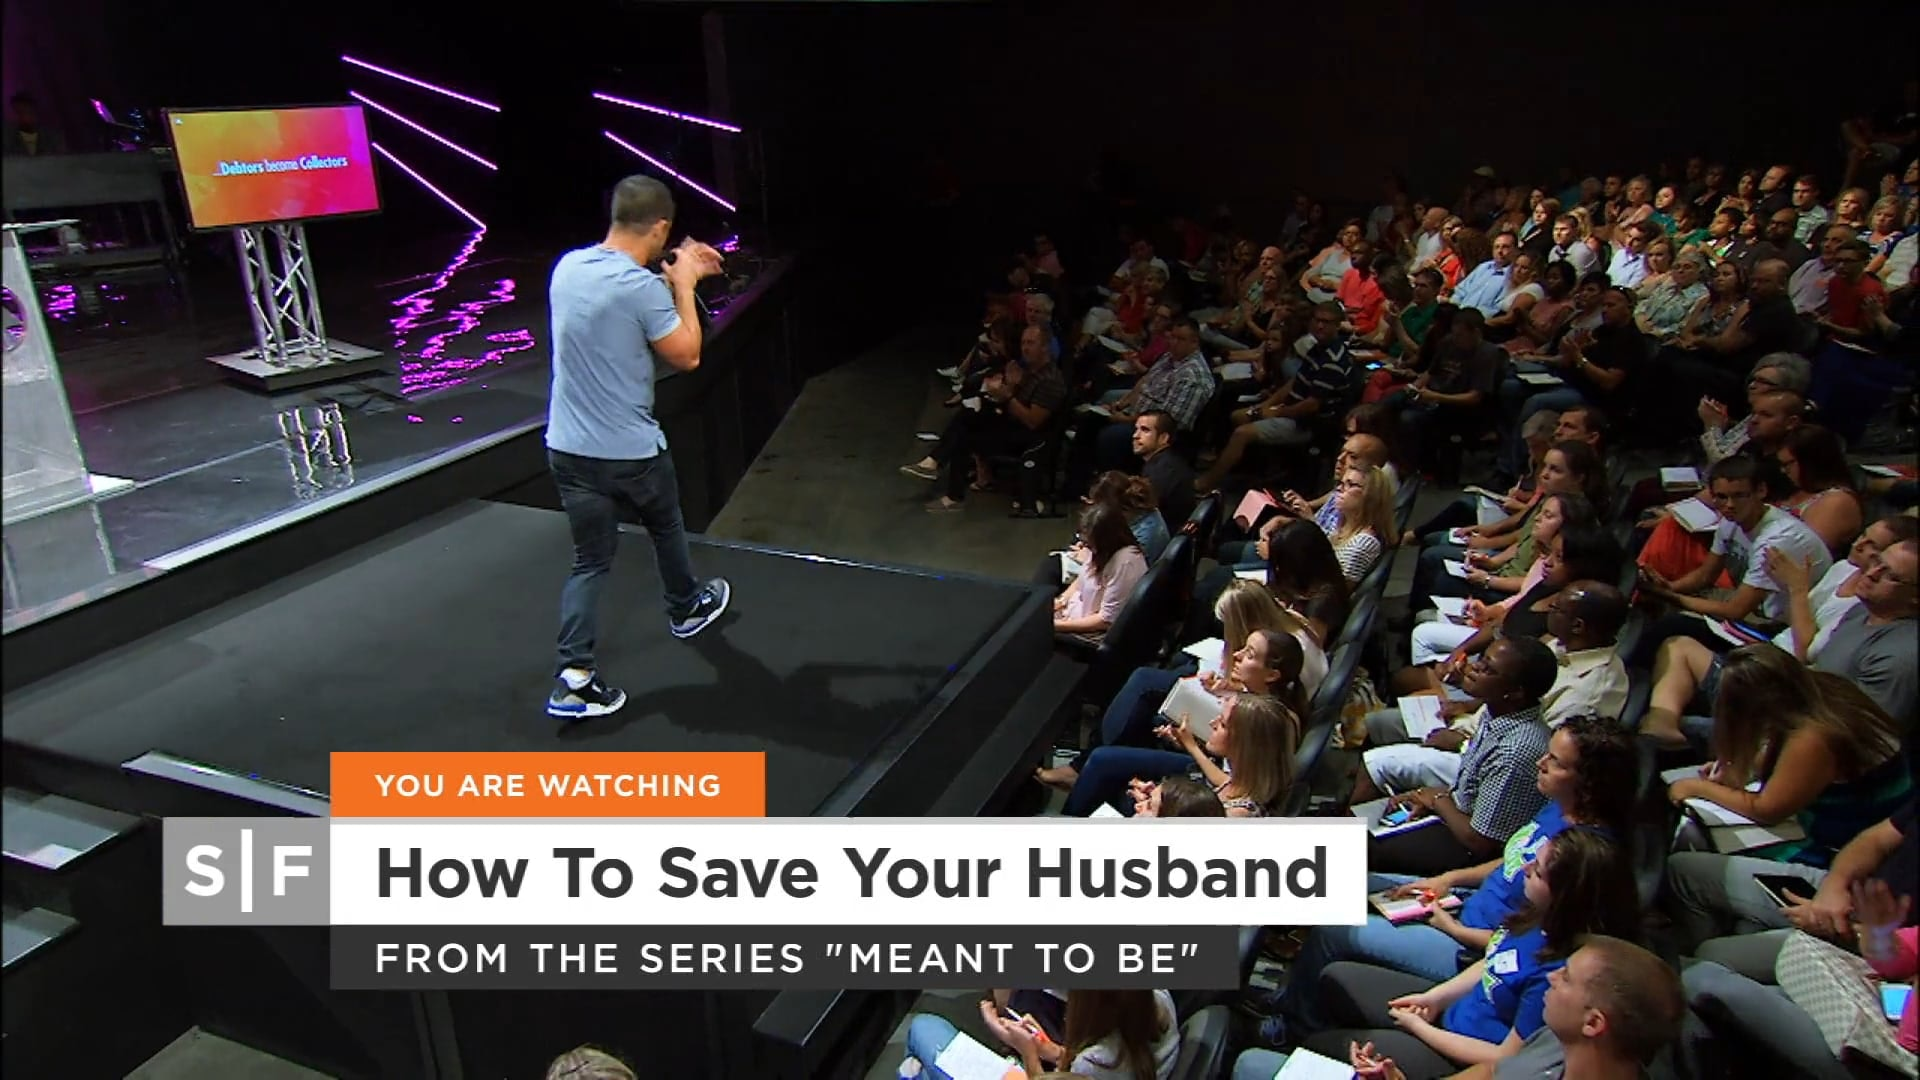 Watch How to Save Your Husband Part 2